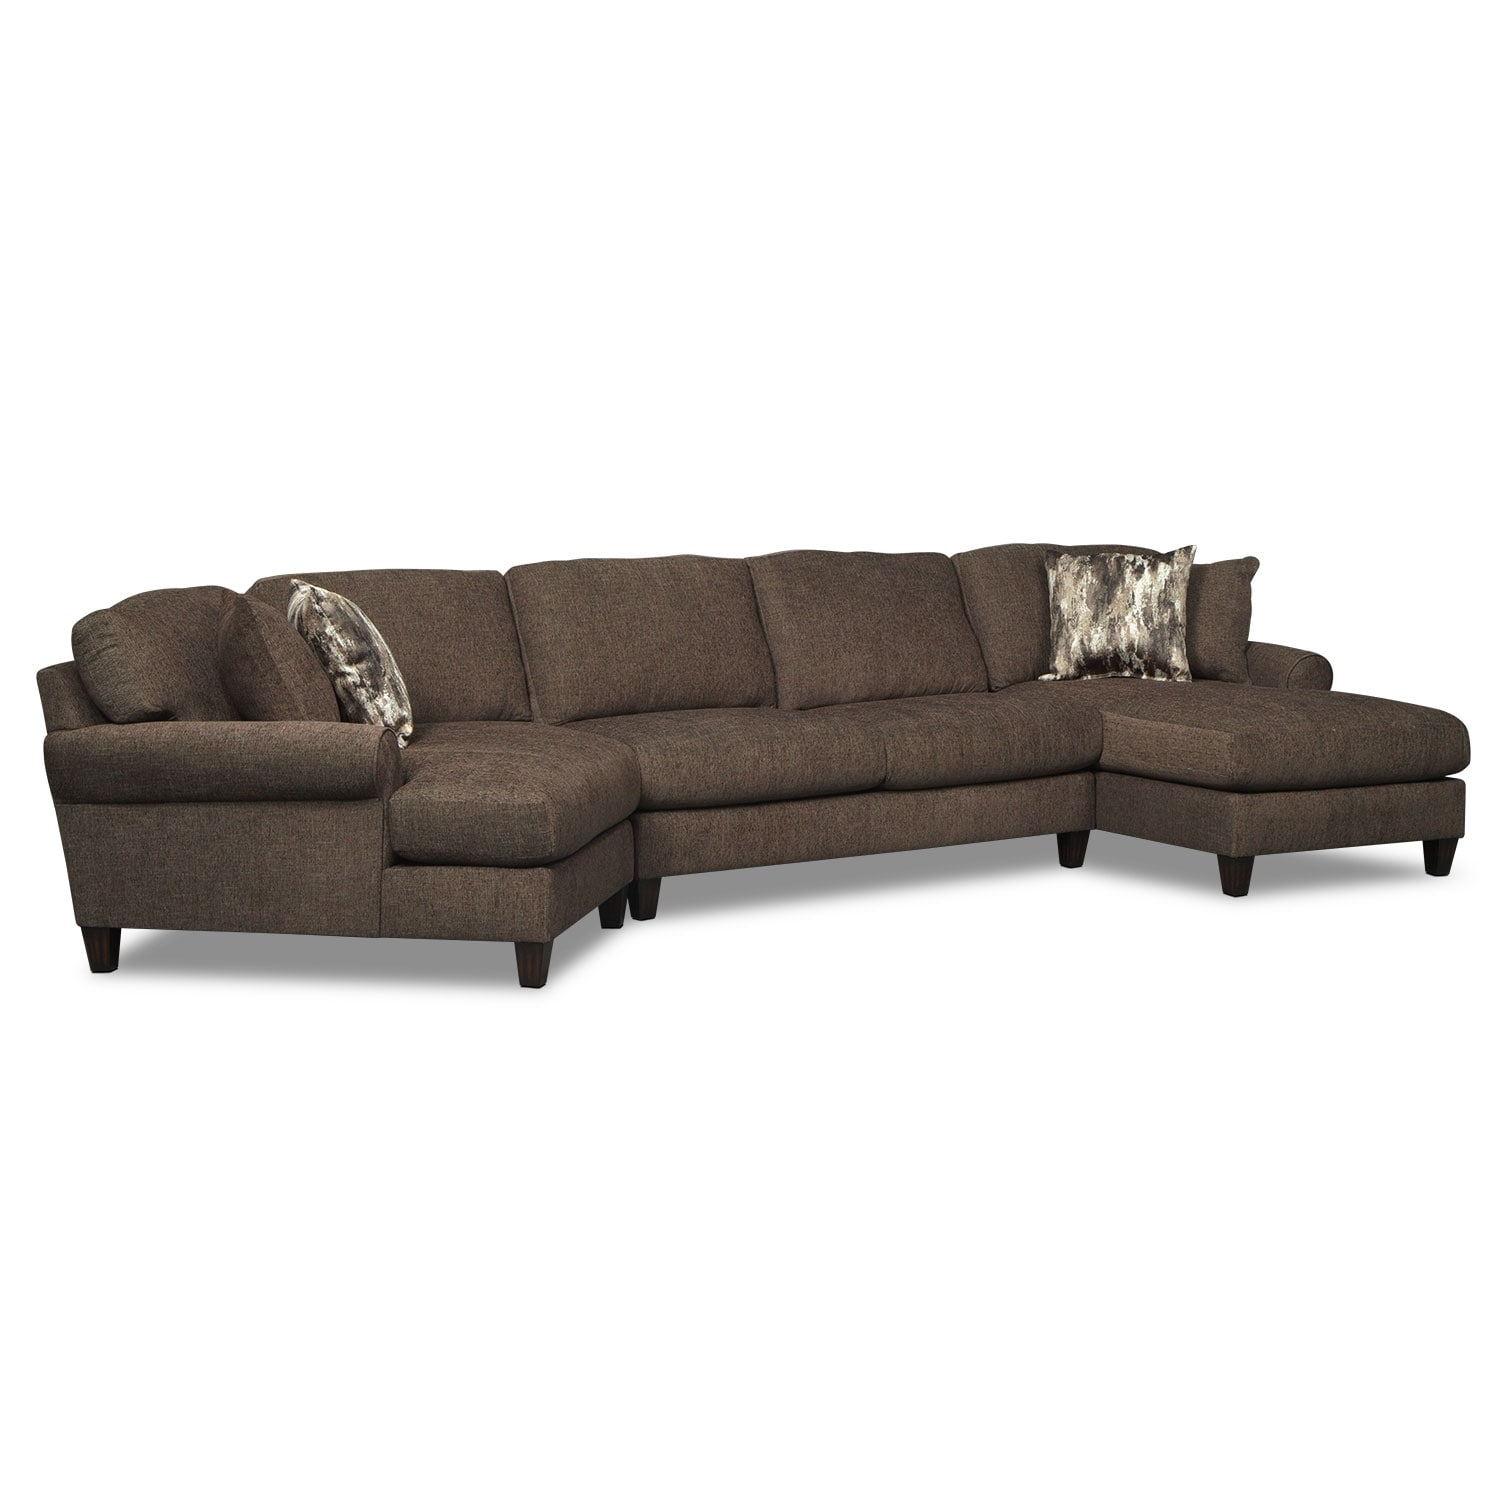 Sectional sofa with cuddler chaise patola park 3 cuddler for Sectional sofa with chaise and cuddler